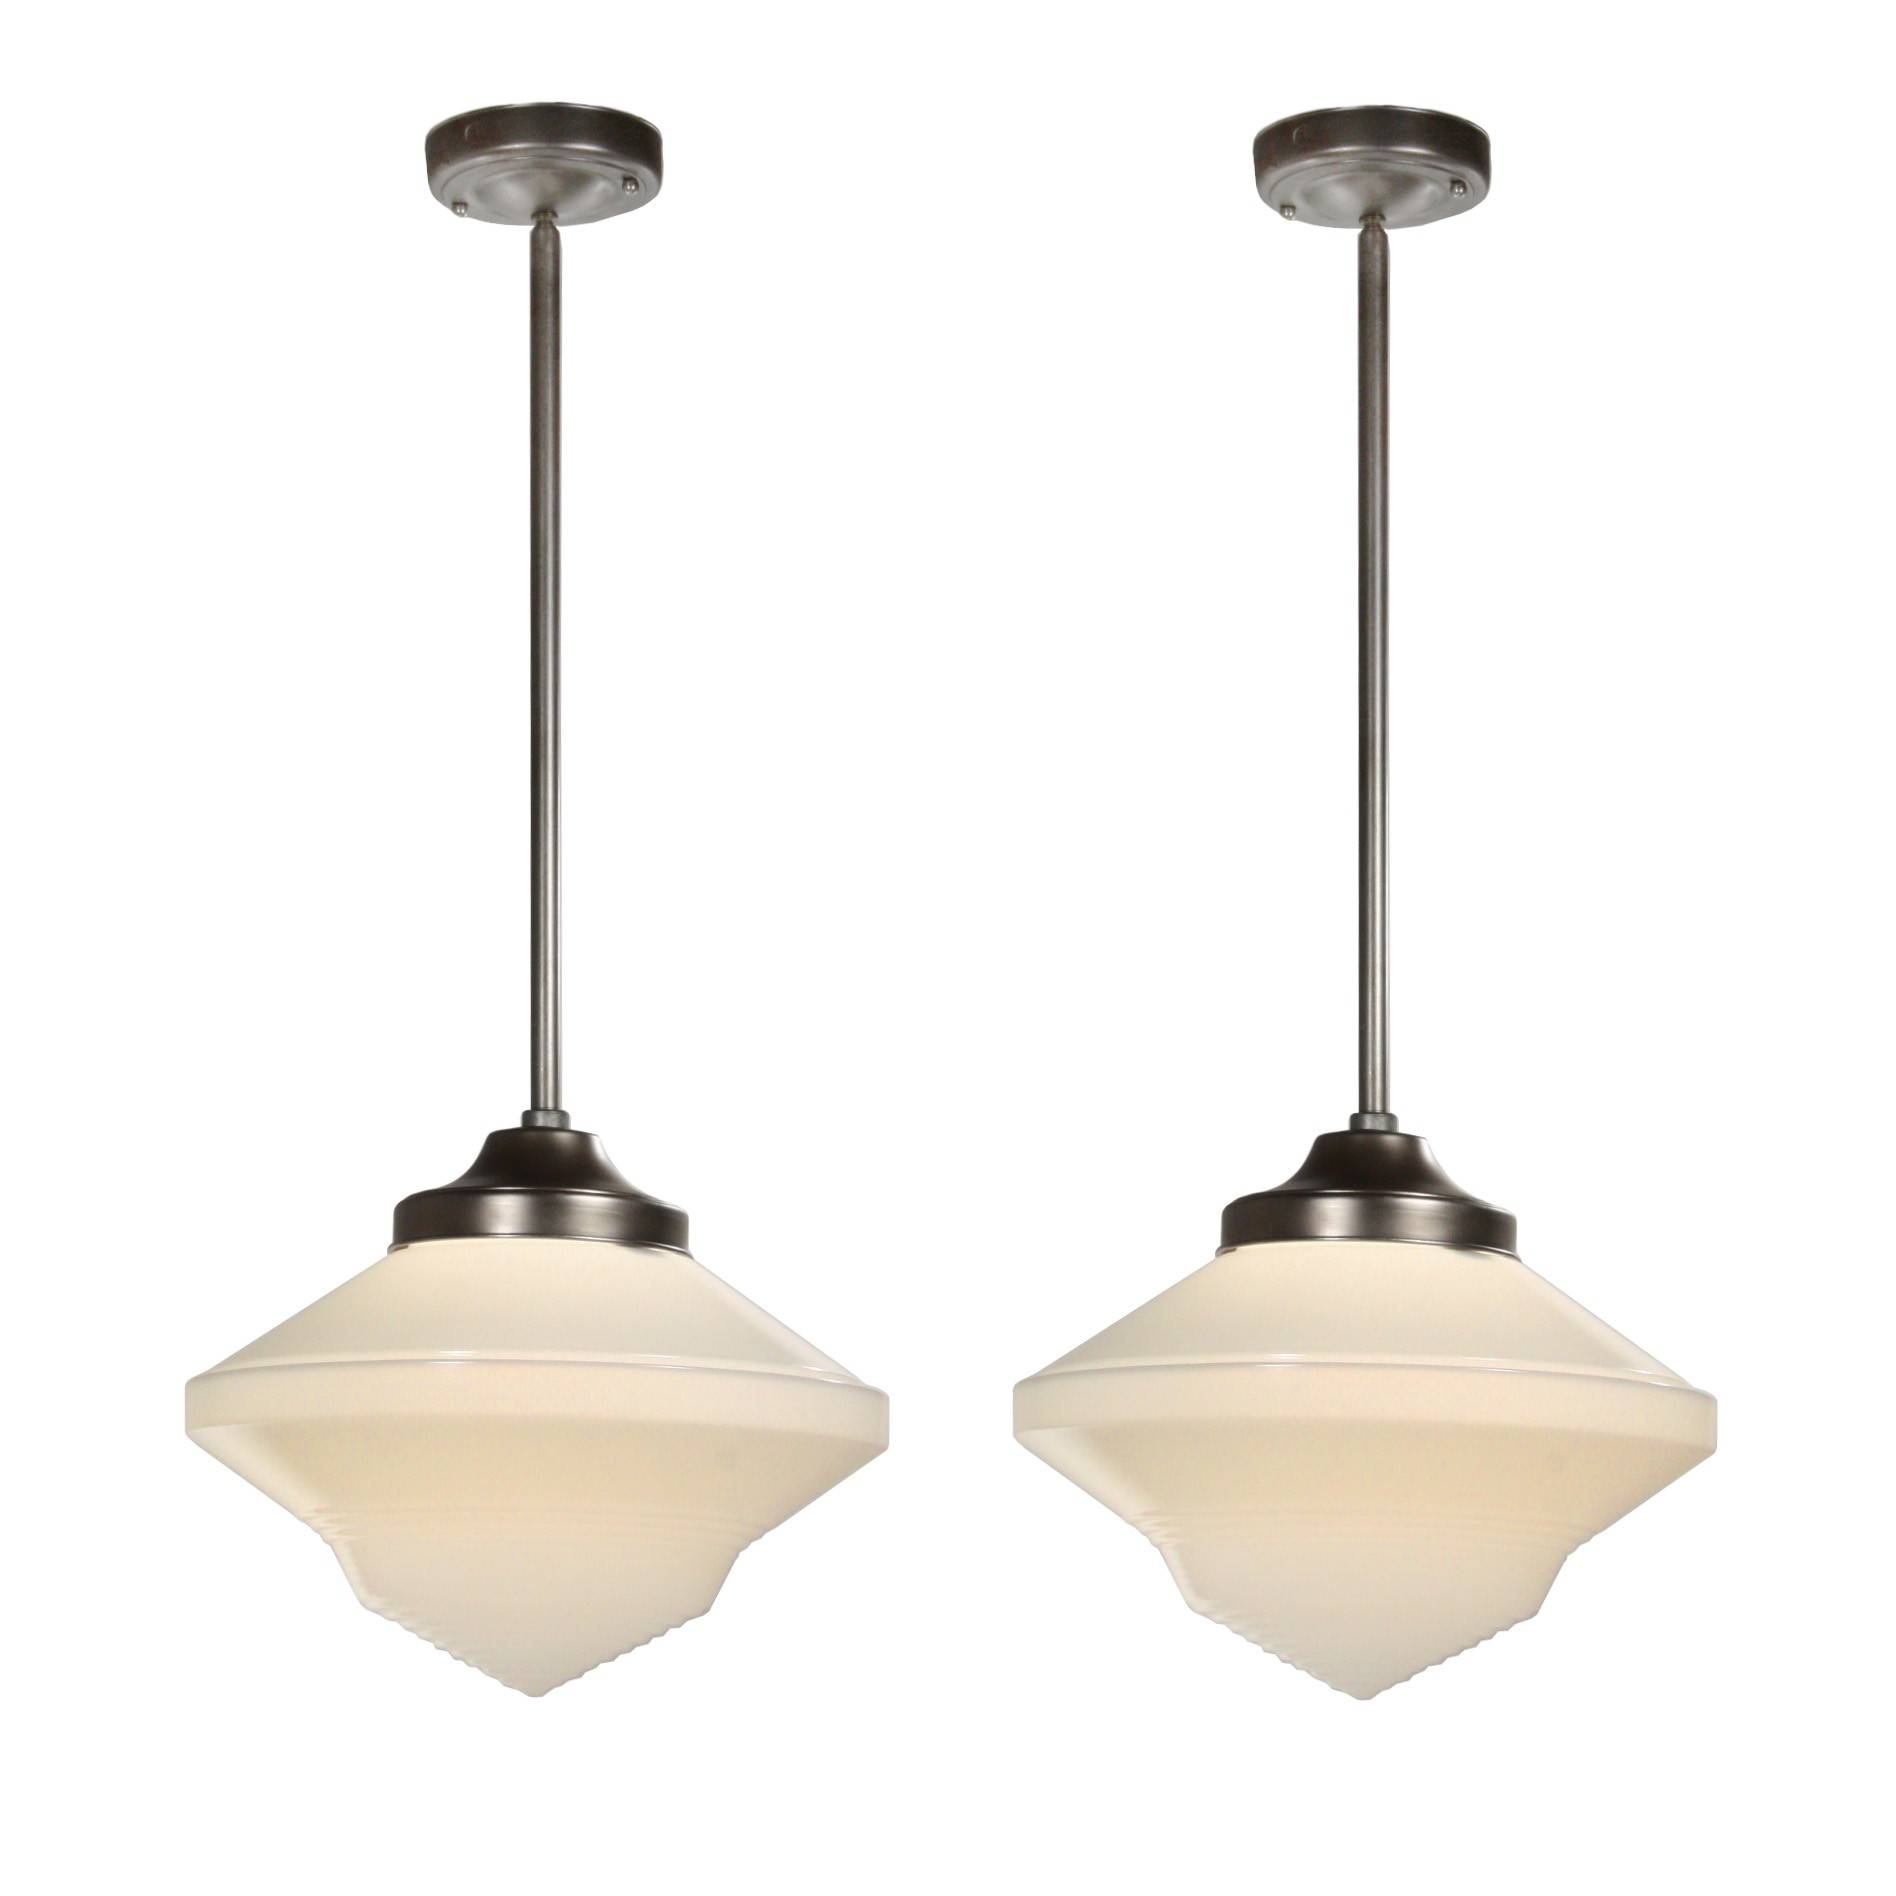 Antique Art Deco Pendant Lights, C.1920 - Preservation Station within Art Nouveau Pendant Lights (Image 5 of 15)